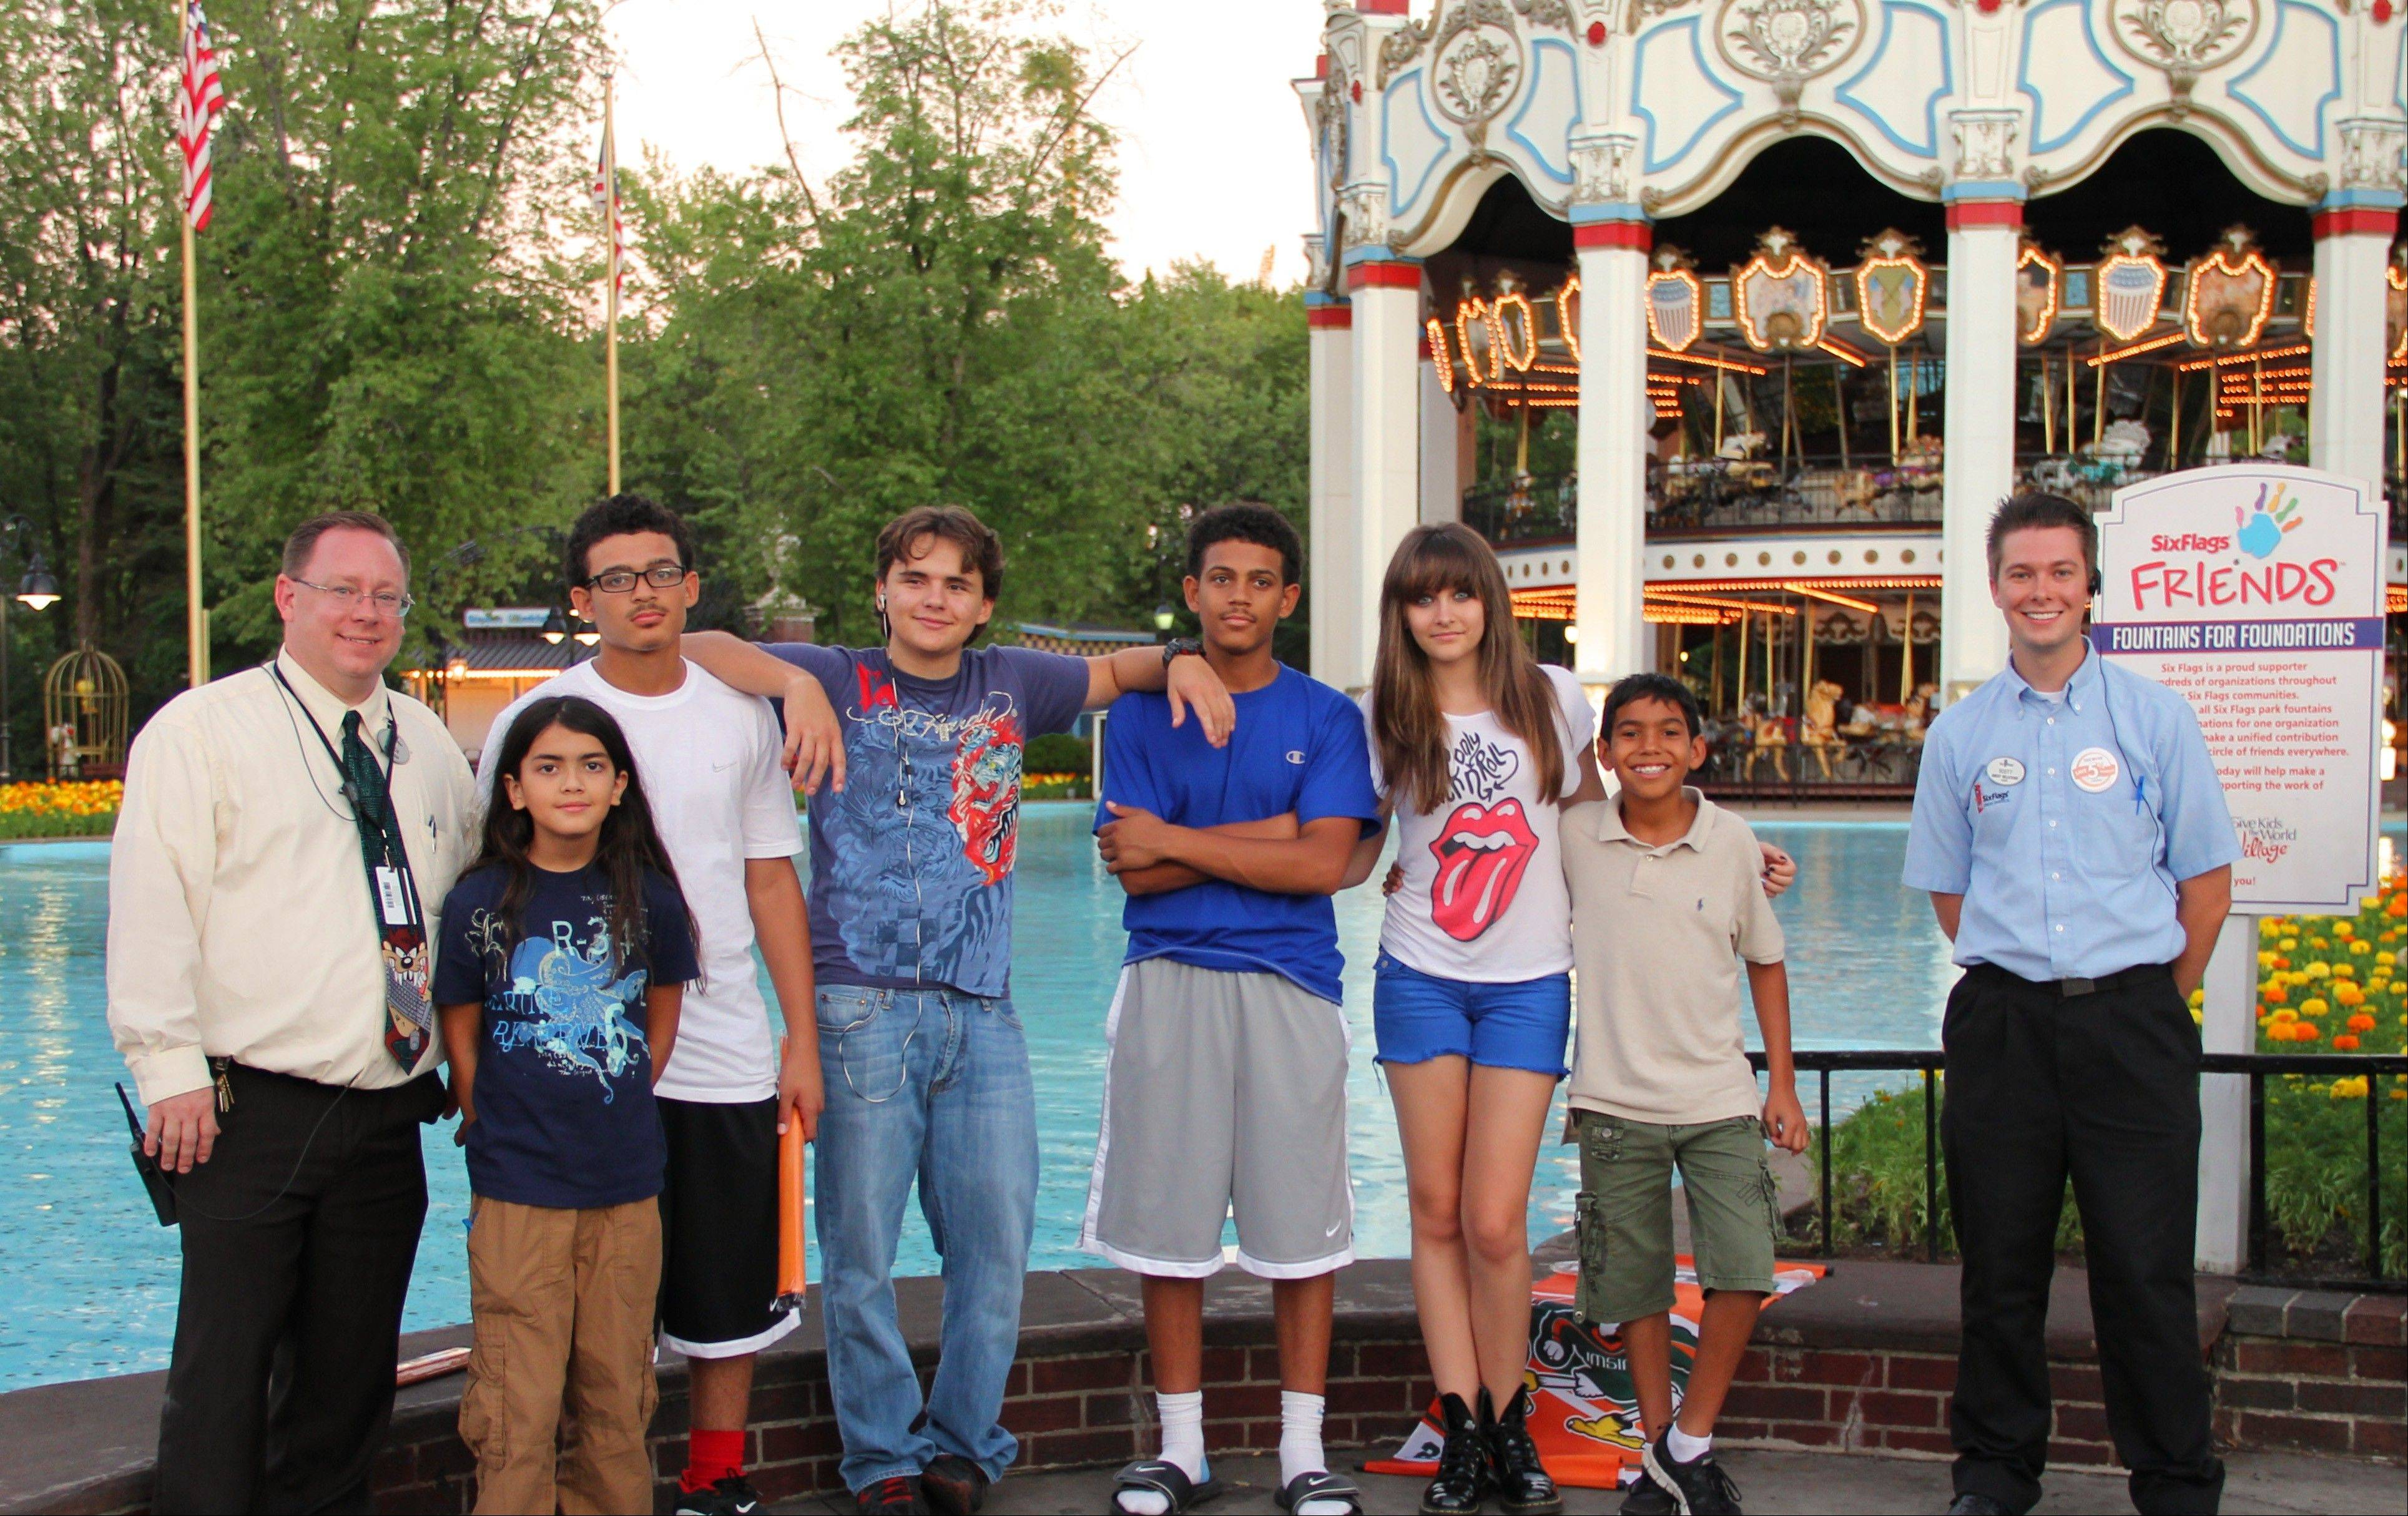 Michael Jackson's children -- Blanket, 10, second from left; Prince, 15, fourth from left; and Paris, 14, third from right -- visited Six Flags Great America in Gurnee on Monday.